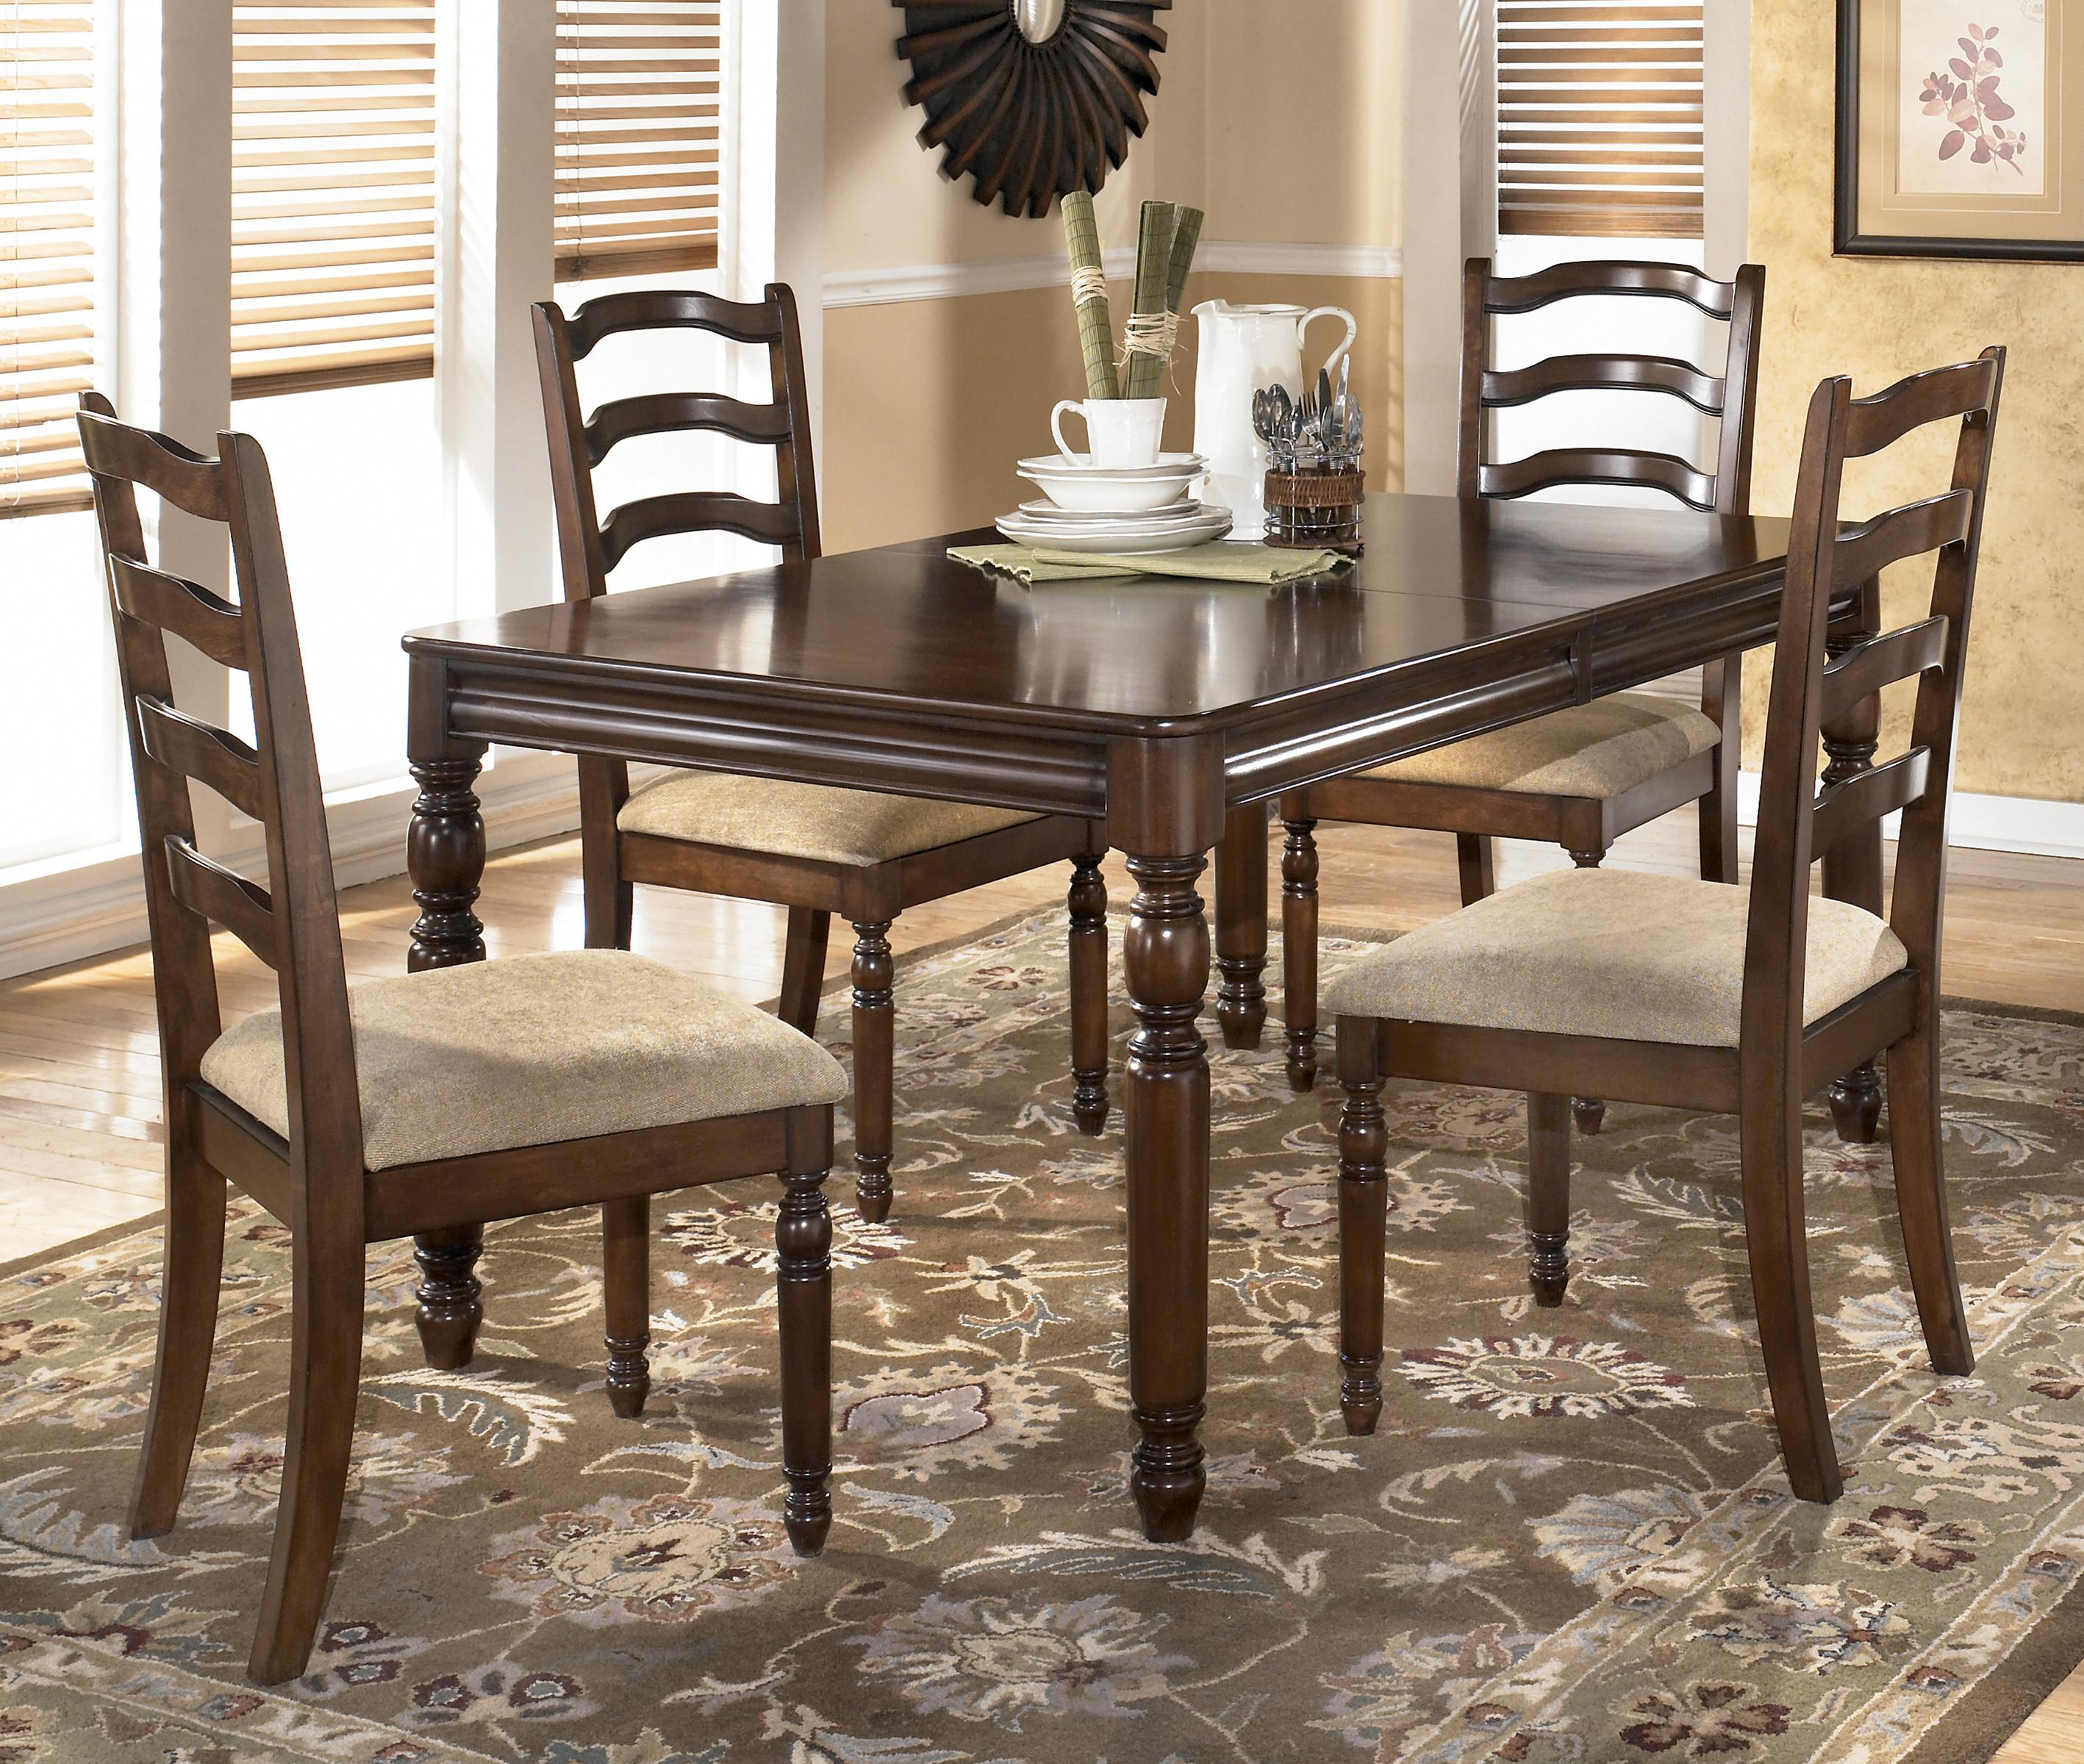 Formal dining room furniture ebay electronics cars for B m dining room furniture